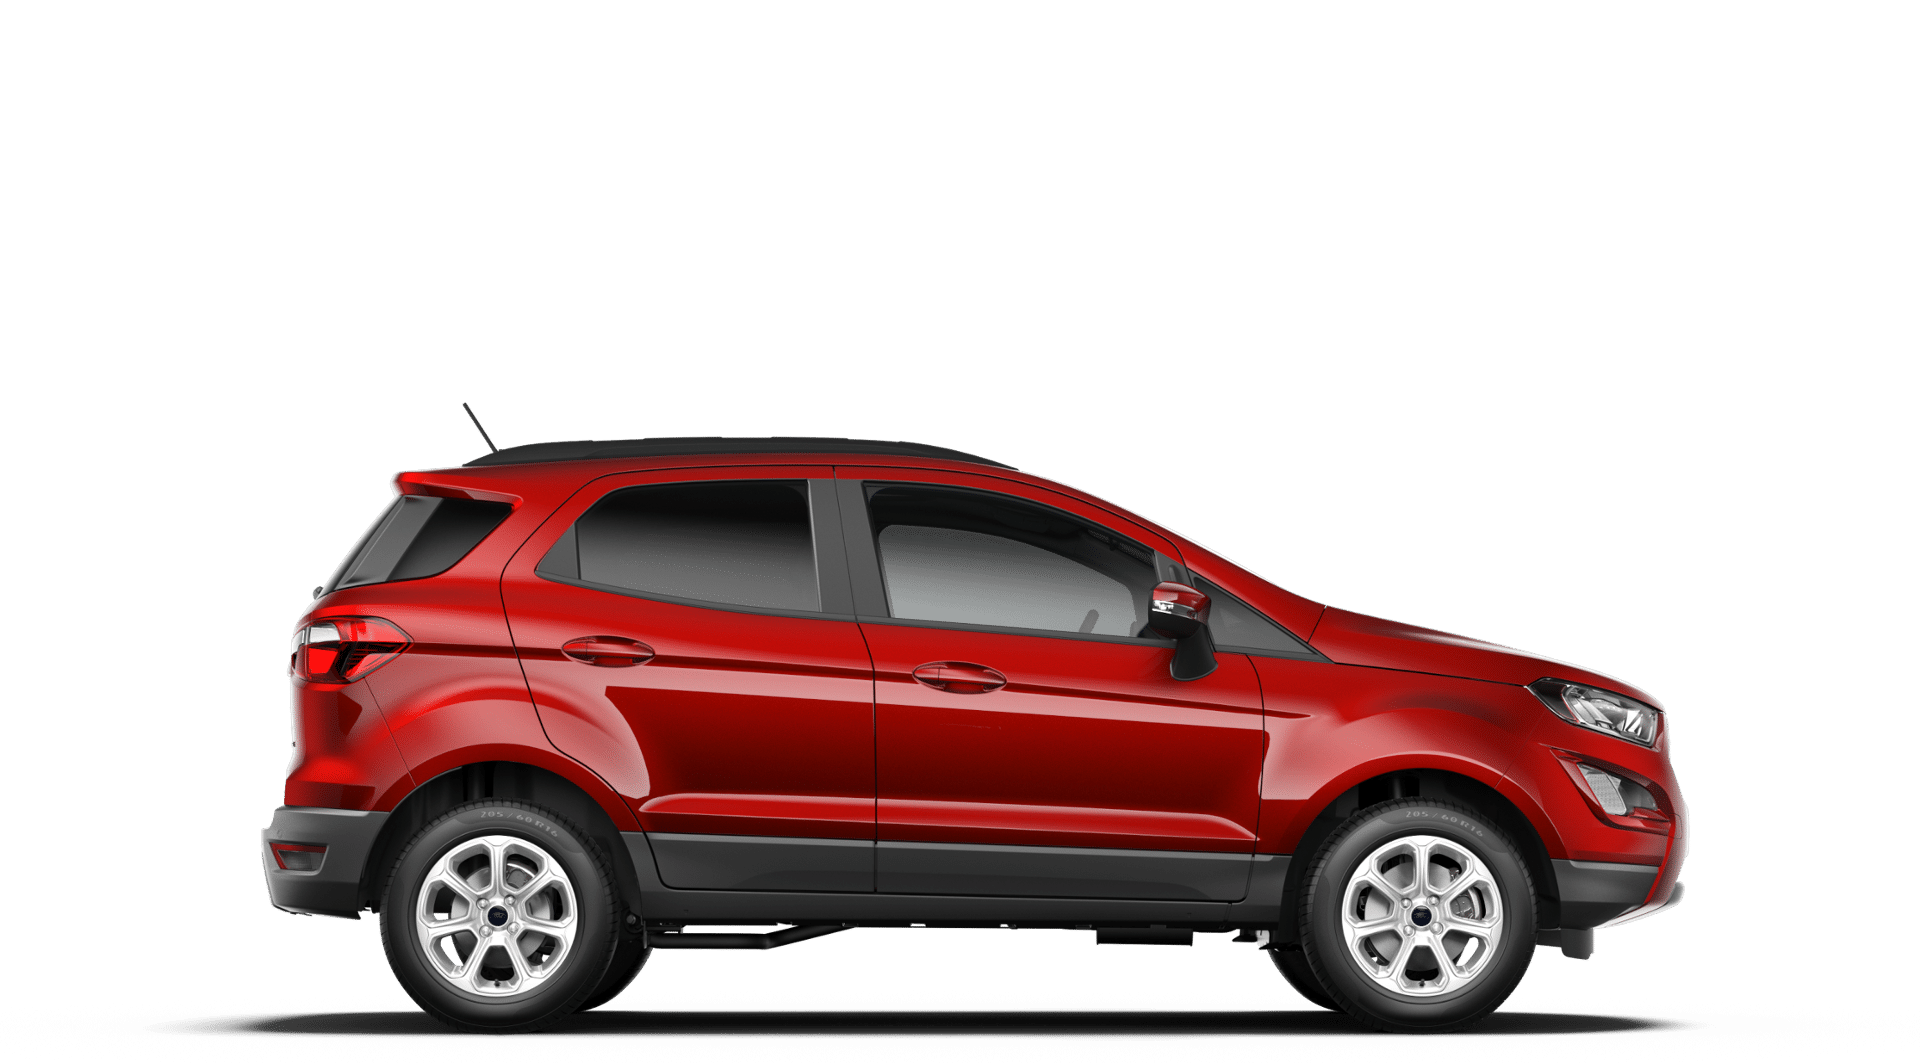 Exterior View of 2018 EcoSport Ford ecosport, Ford